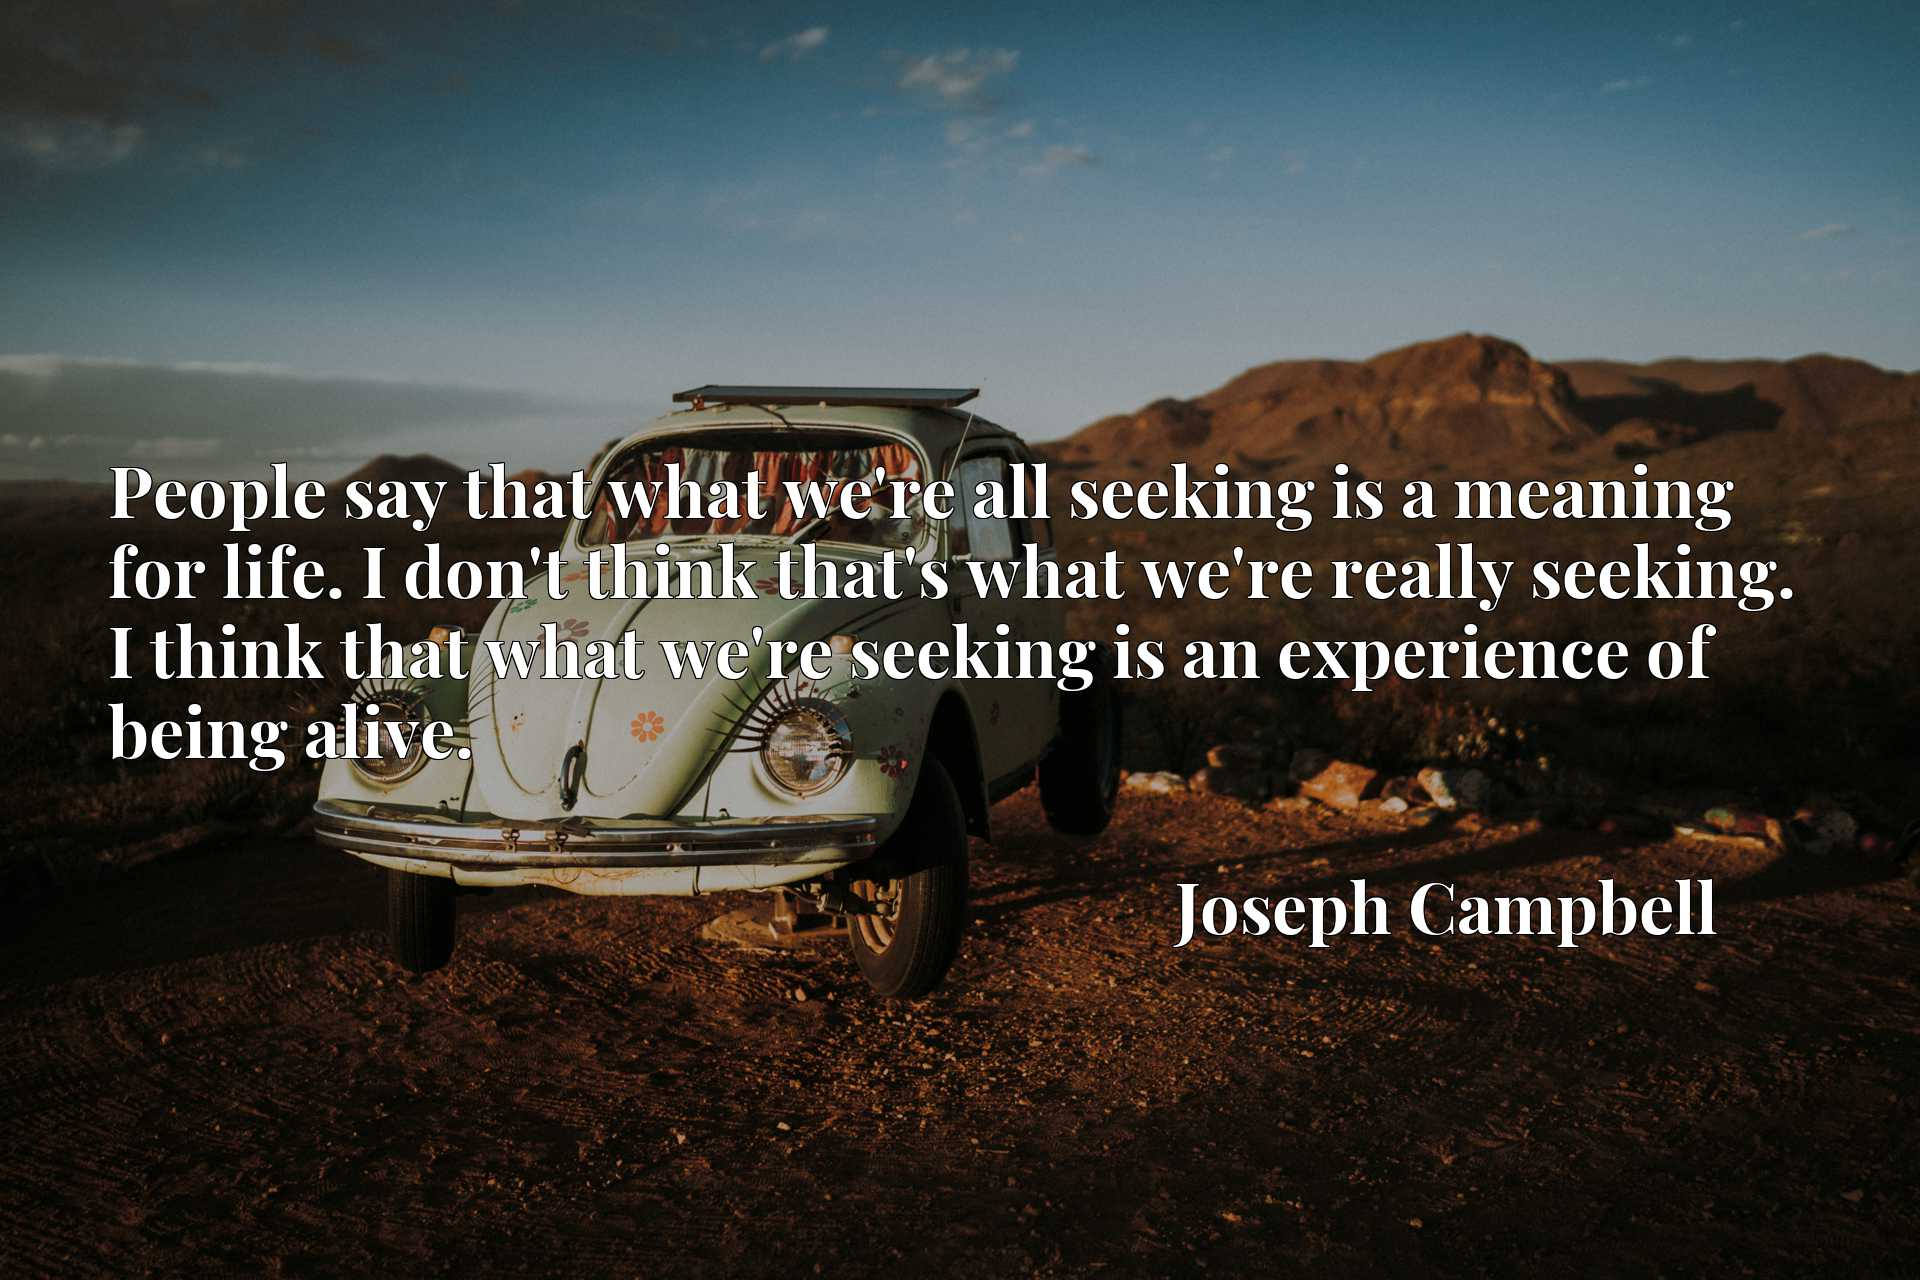 People say that what we're all seeking is a meaning for life. I don't think that's what we're really seeking. I think that what we're seeking is an experience of being alive.